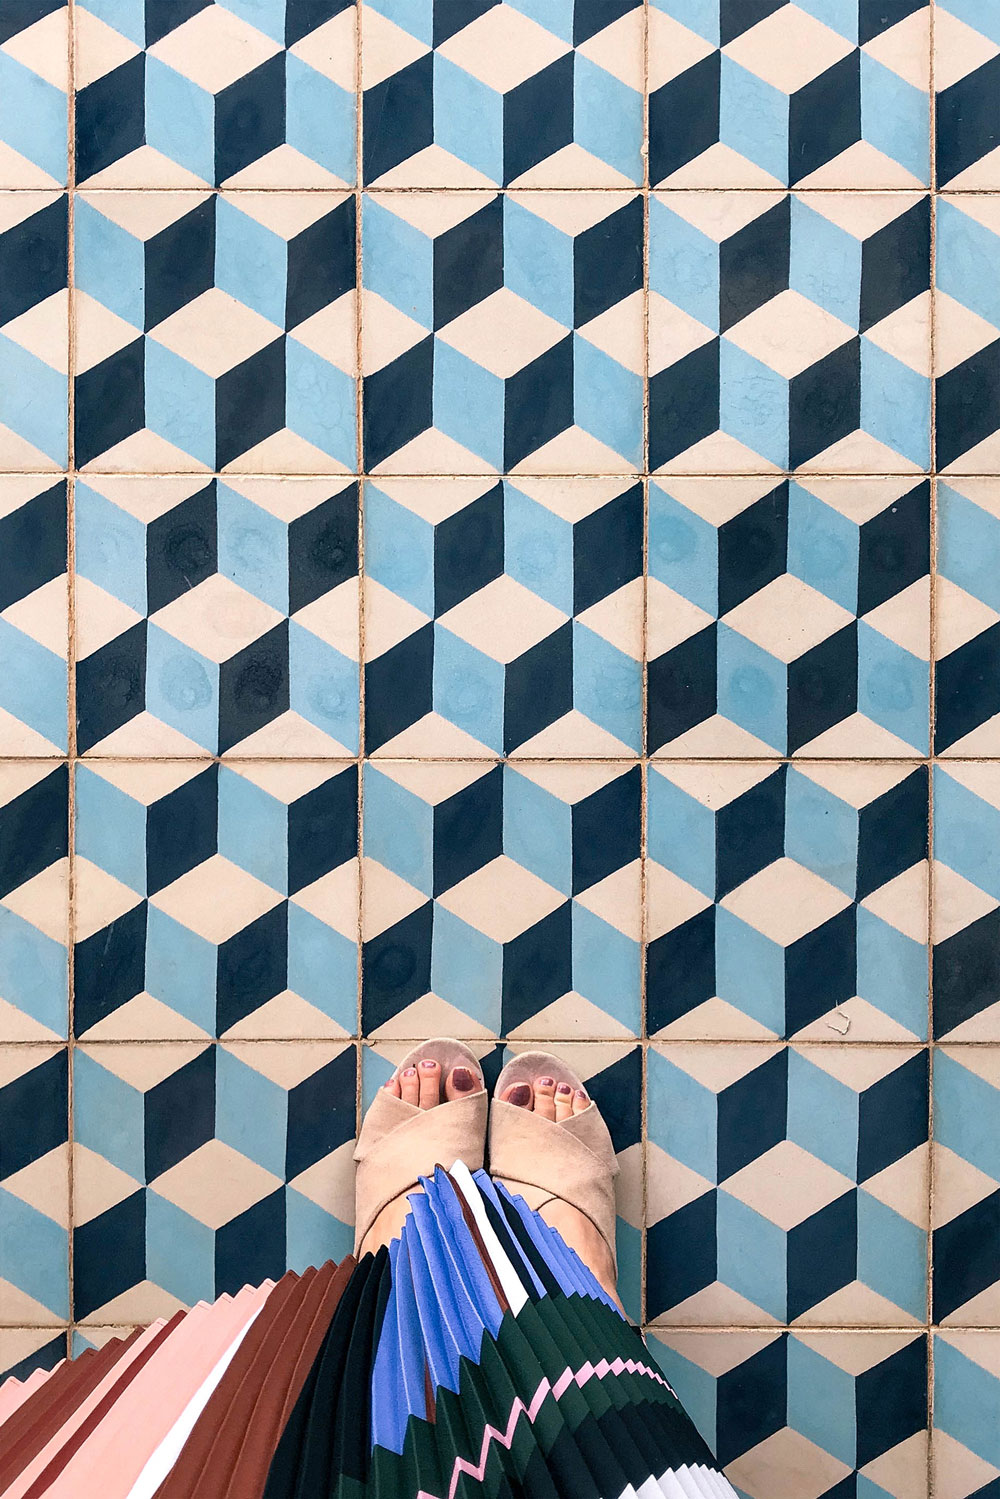 Blue Cubist Tiles